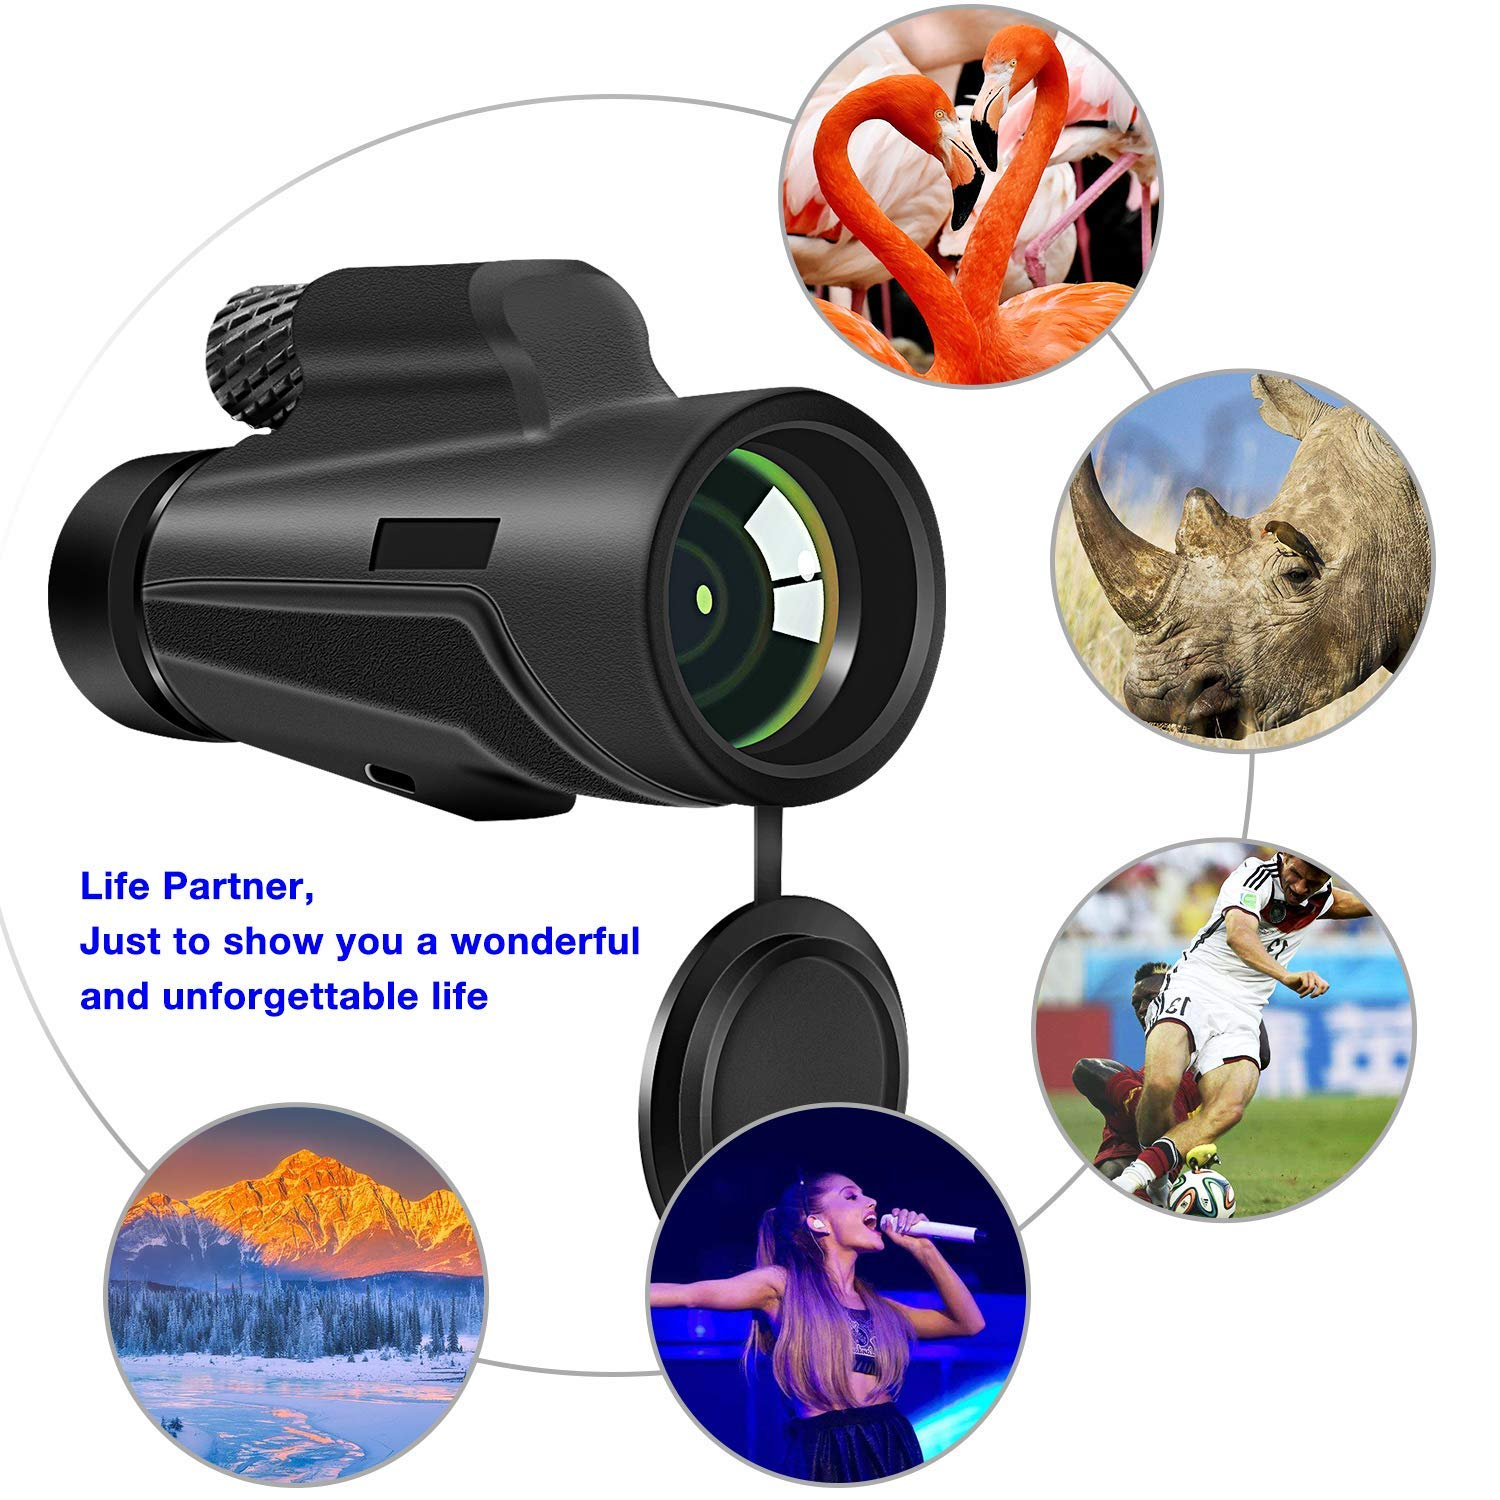 Monocular Telescope, 12x50 High Power BAK4 Prism Telescope, Portable Waterproof Spotting Scope with Quick Smartphone Holder Tripod and Neck Strap for Outdoor Bird Watching Hunting Hiking by highbrain (Image #3)